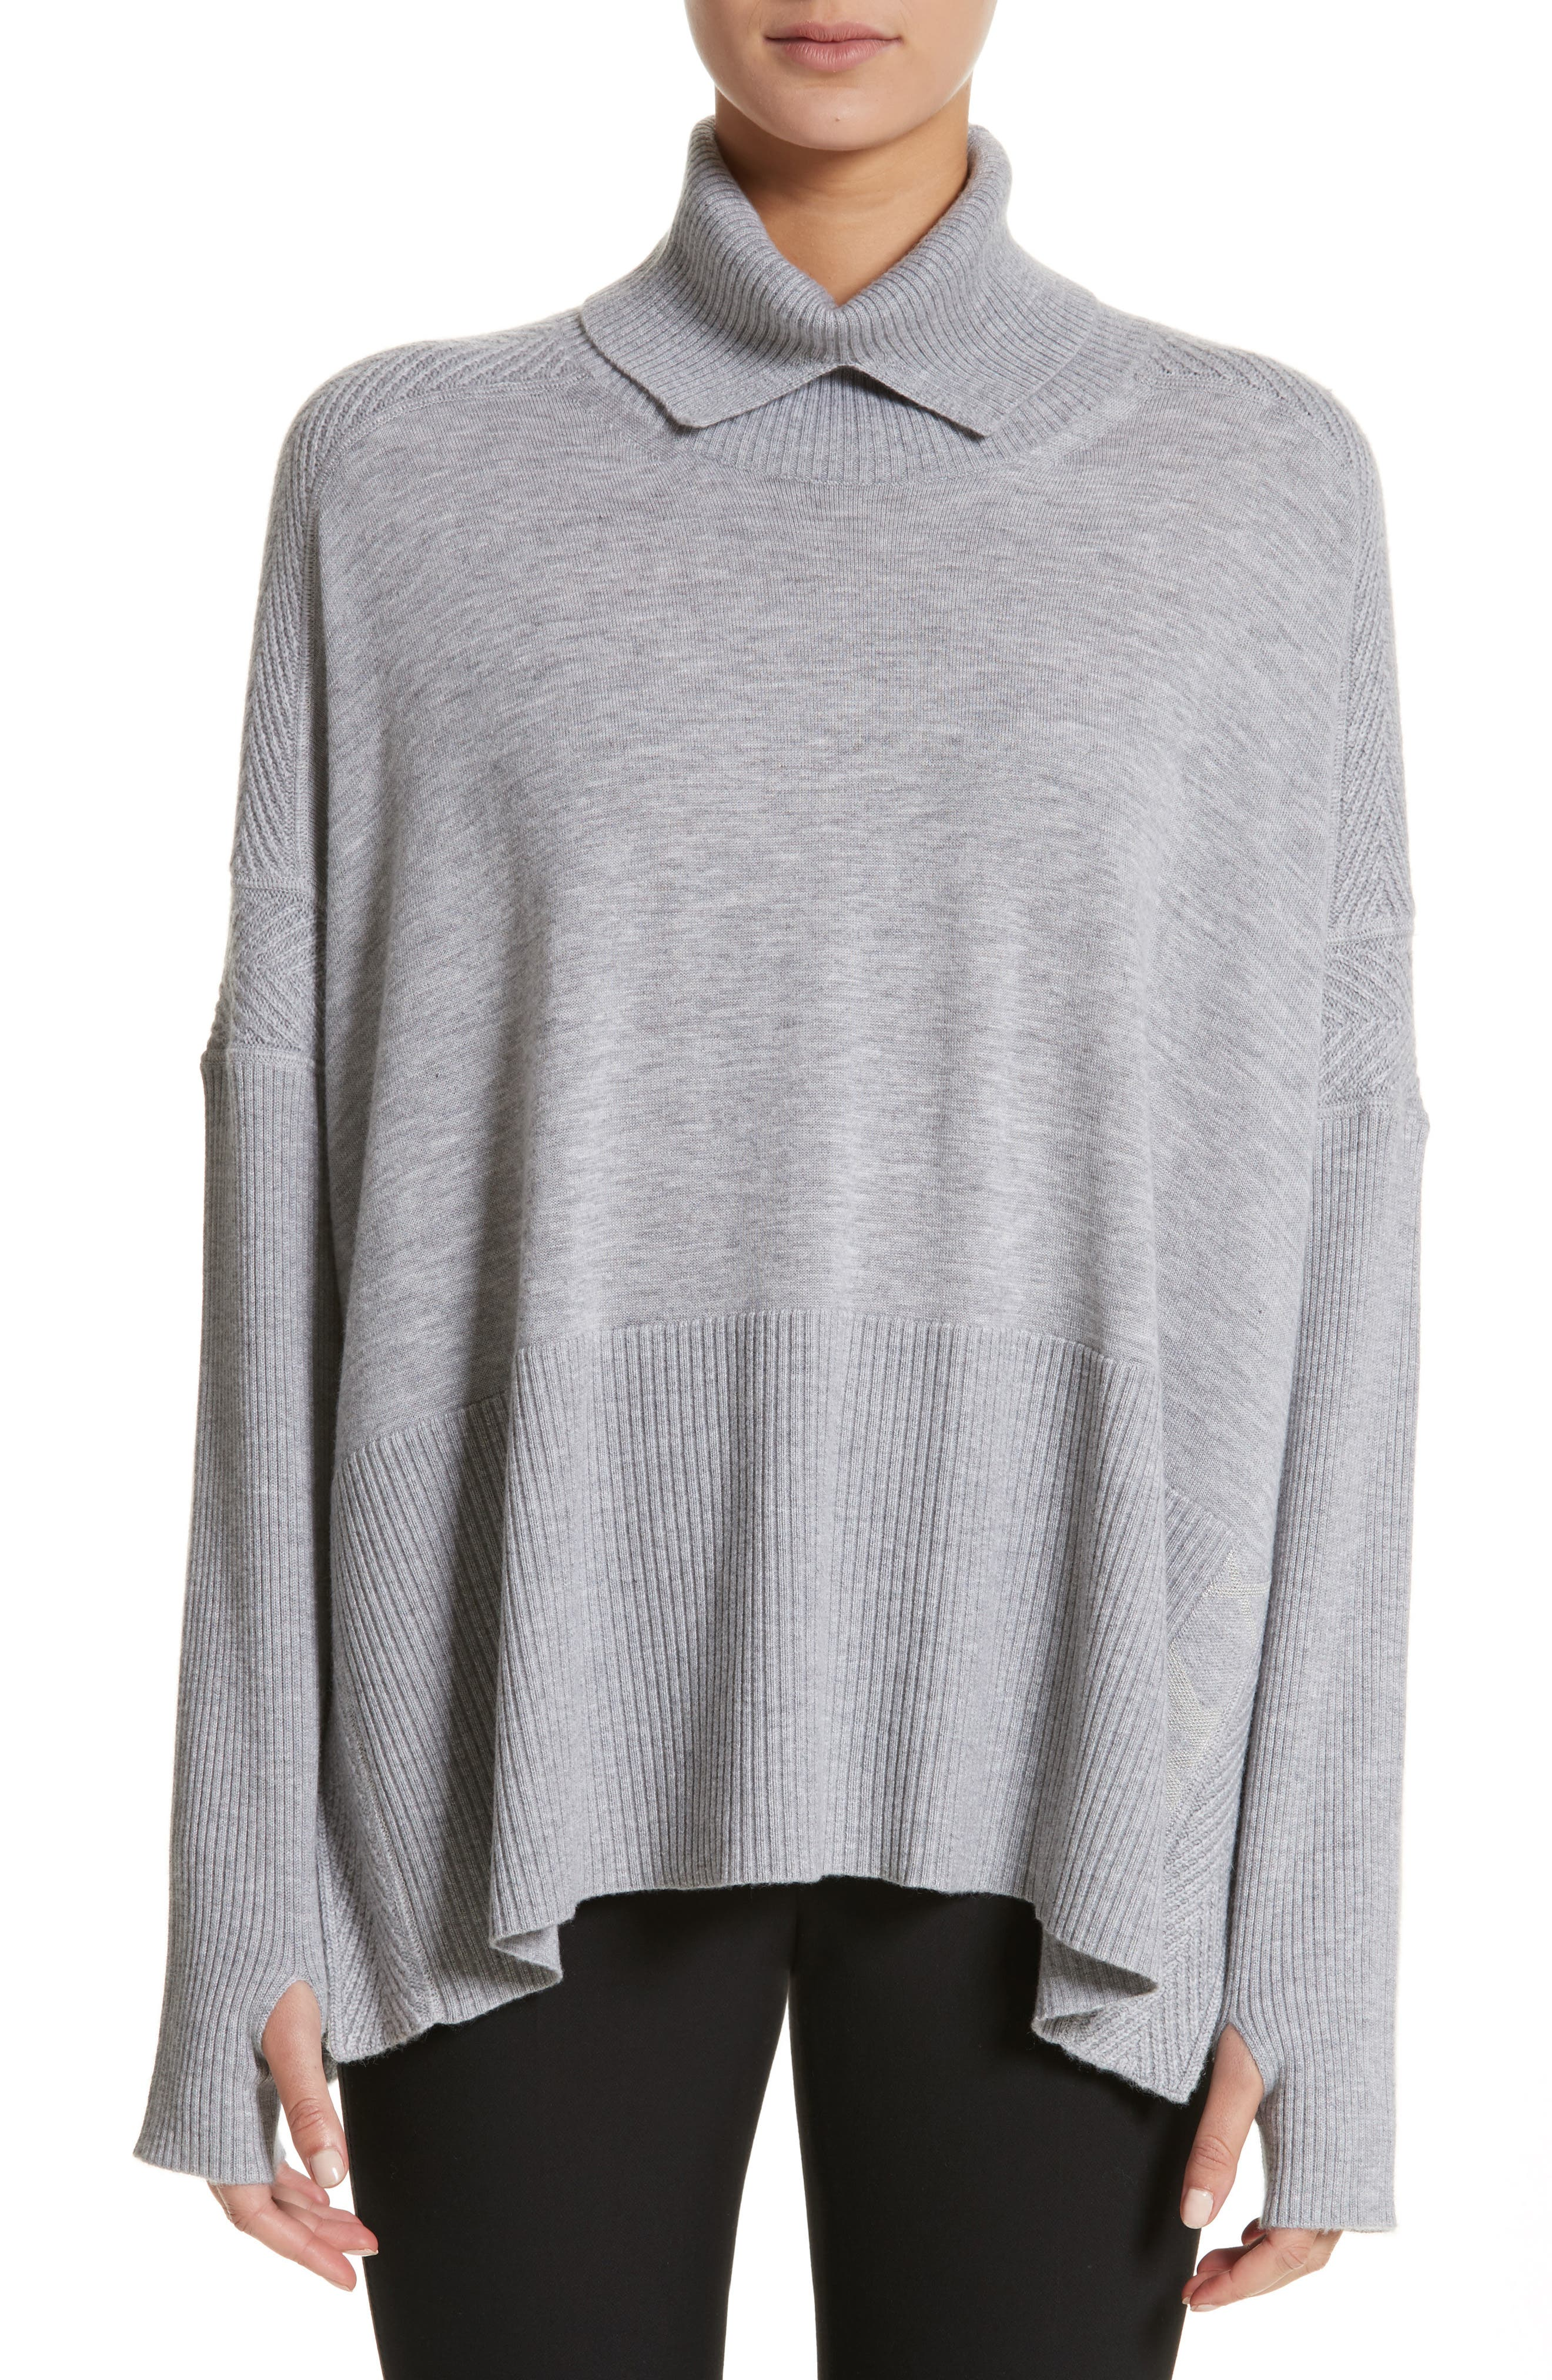 Burberry Potenza Wool & Cashmere Turtleneck Sweater